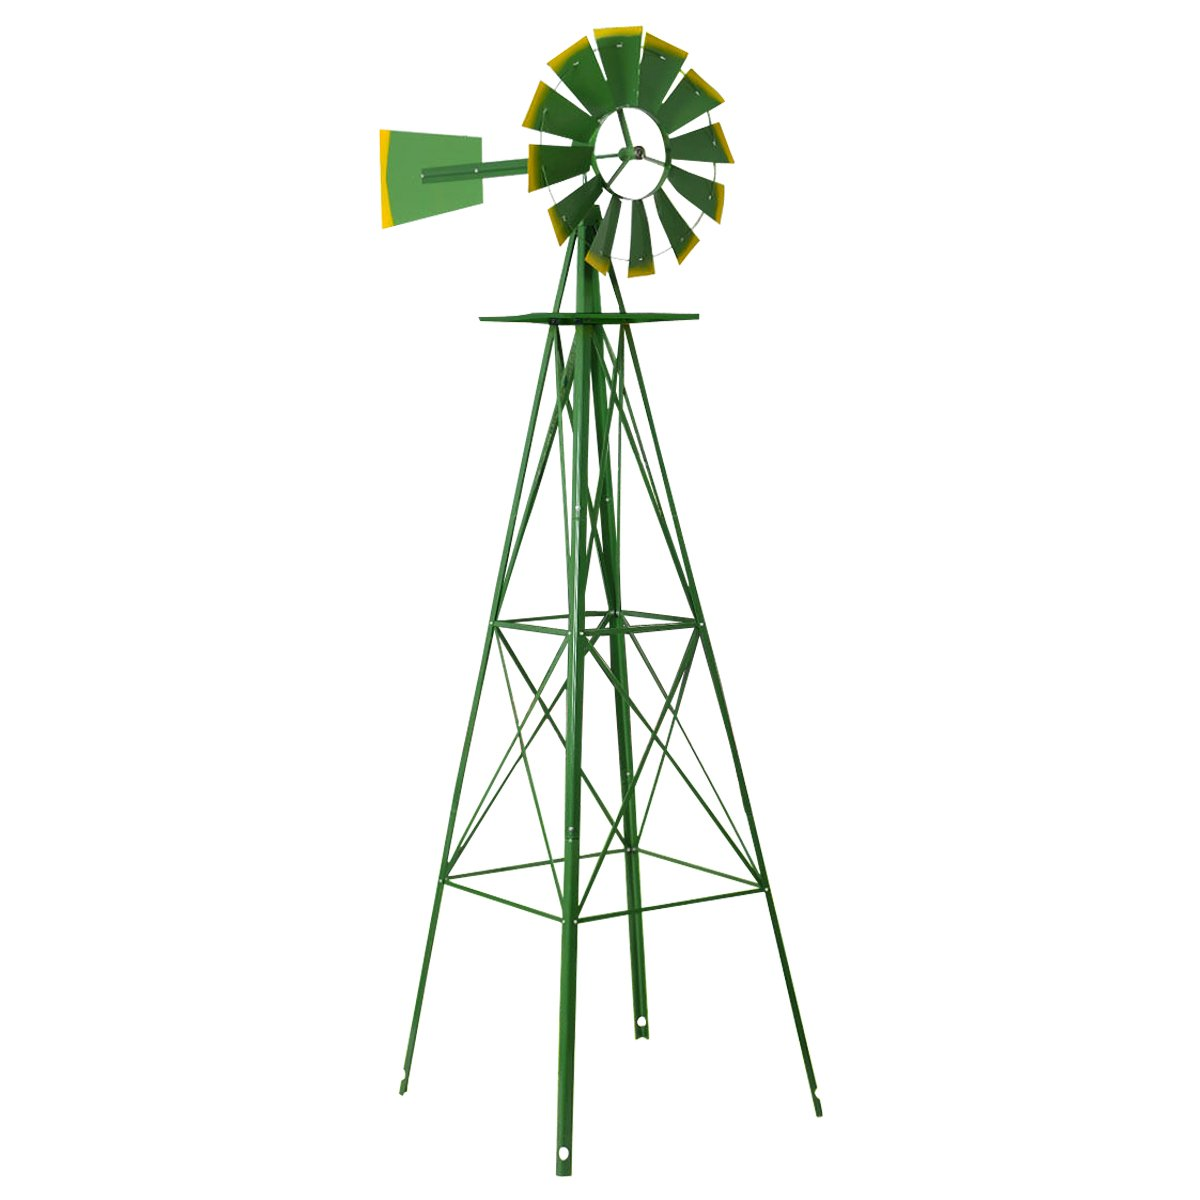 TANGKULA 8FT Windmill Yard Garden Metal Ornamental Wind Mill Weather Vane Weather Resistant (Green)